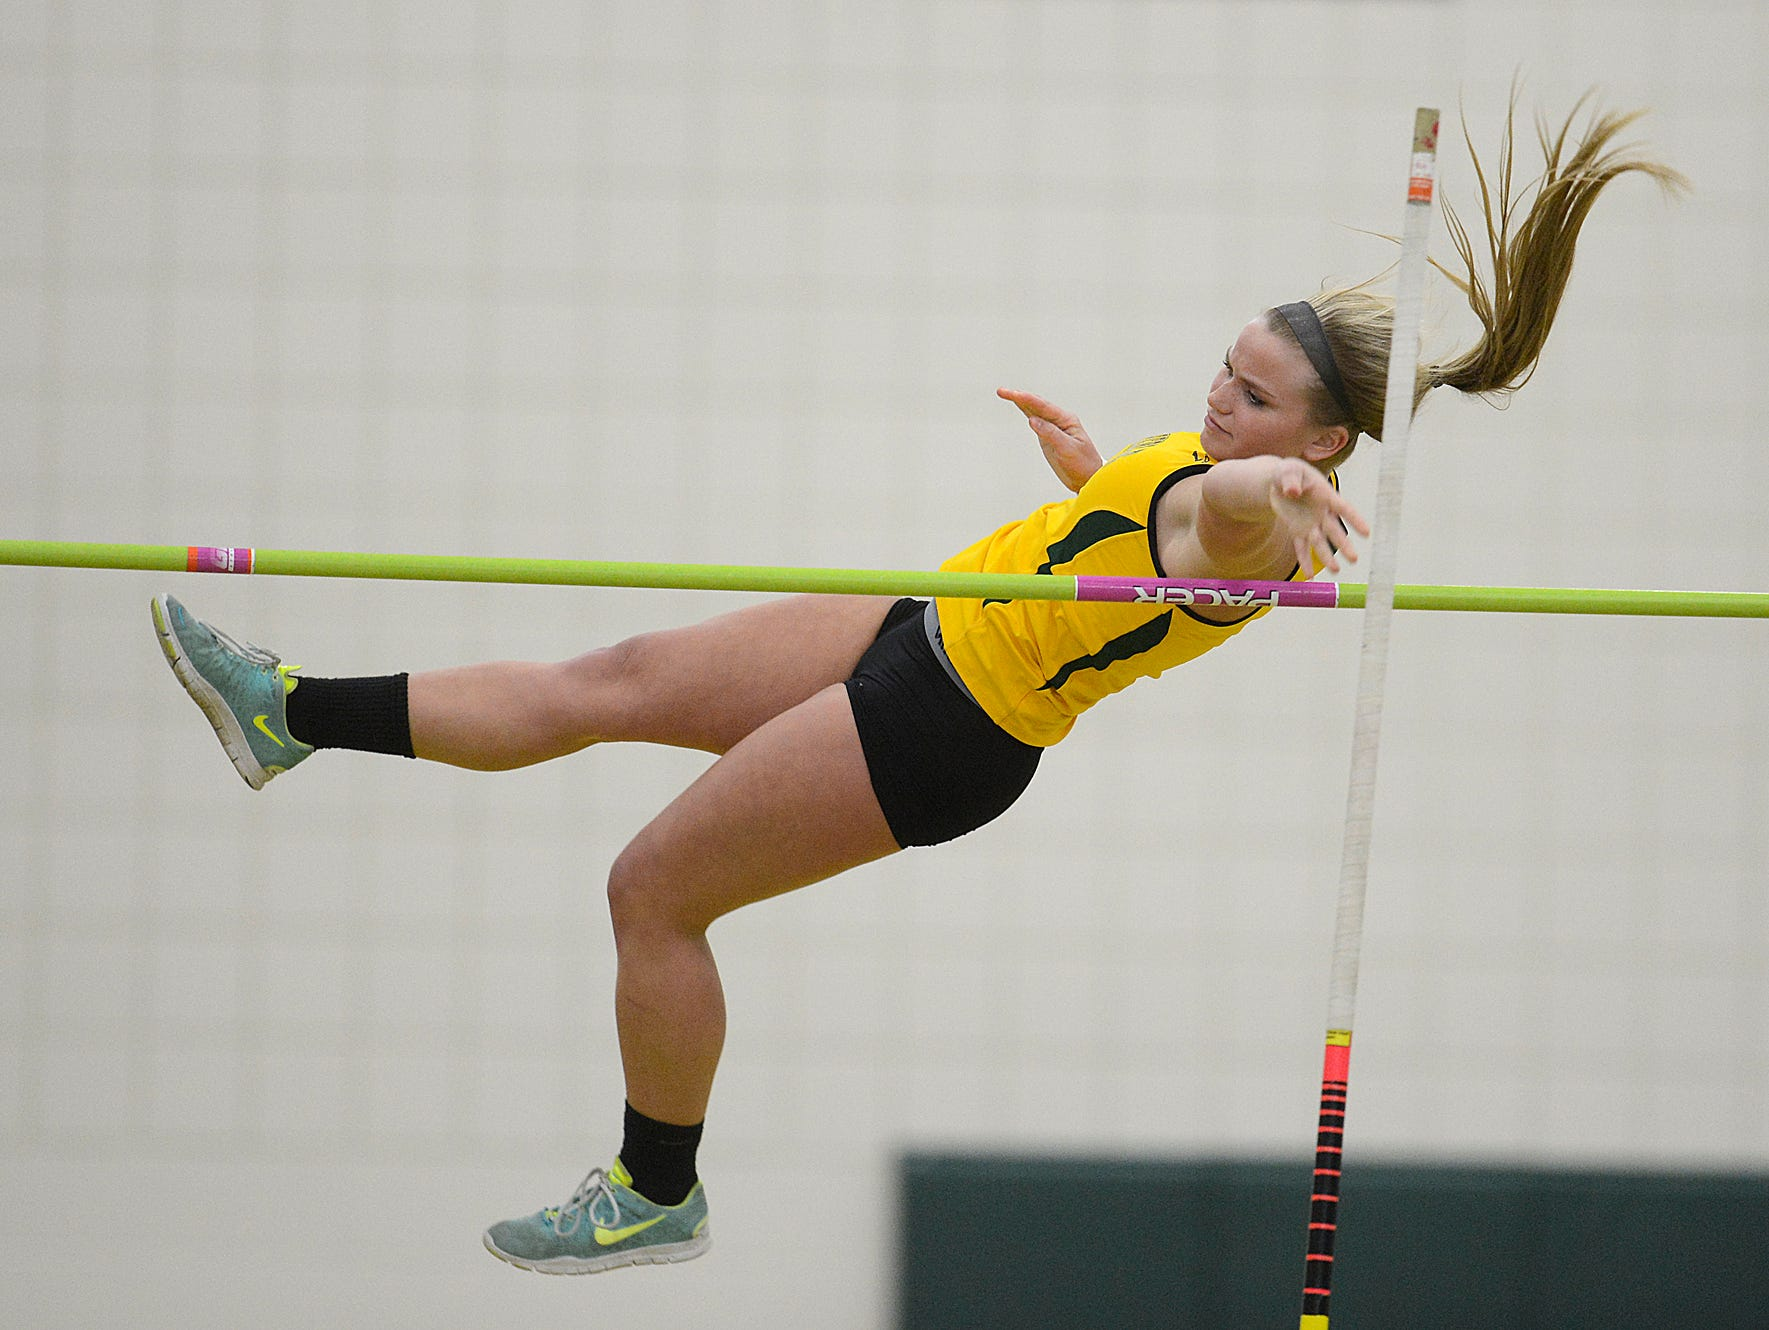 Green Bay Preble's MaKayla Hansen clears the bar while competing in the pole vault during the 16th annual Preble Indoor Invitational at Green Bay Preble High School on Wednesday, March 18, 2015.